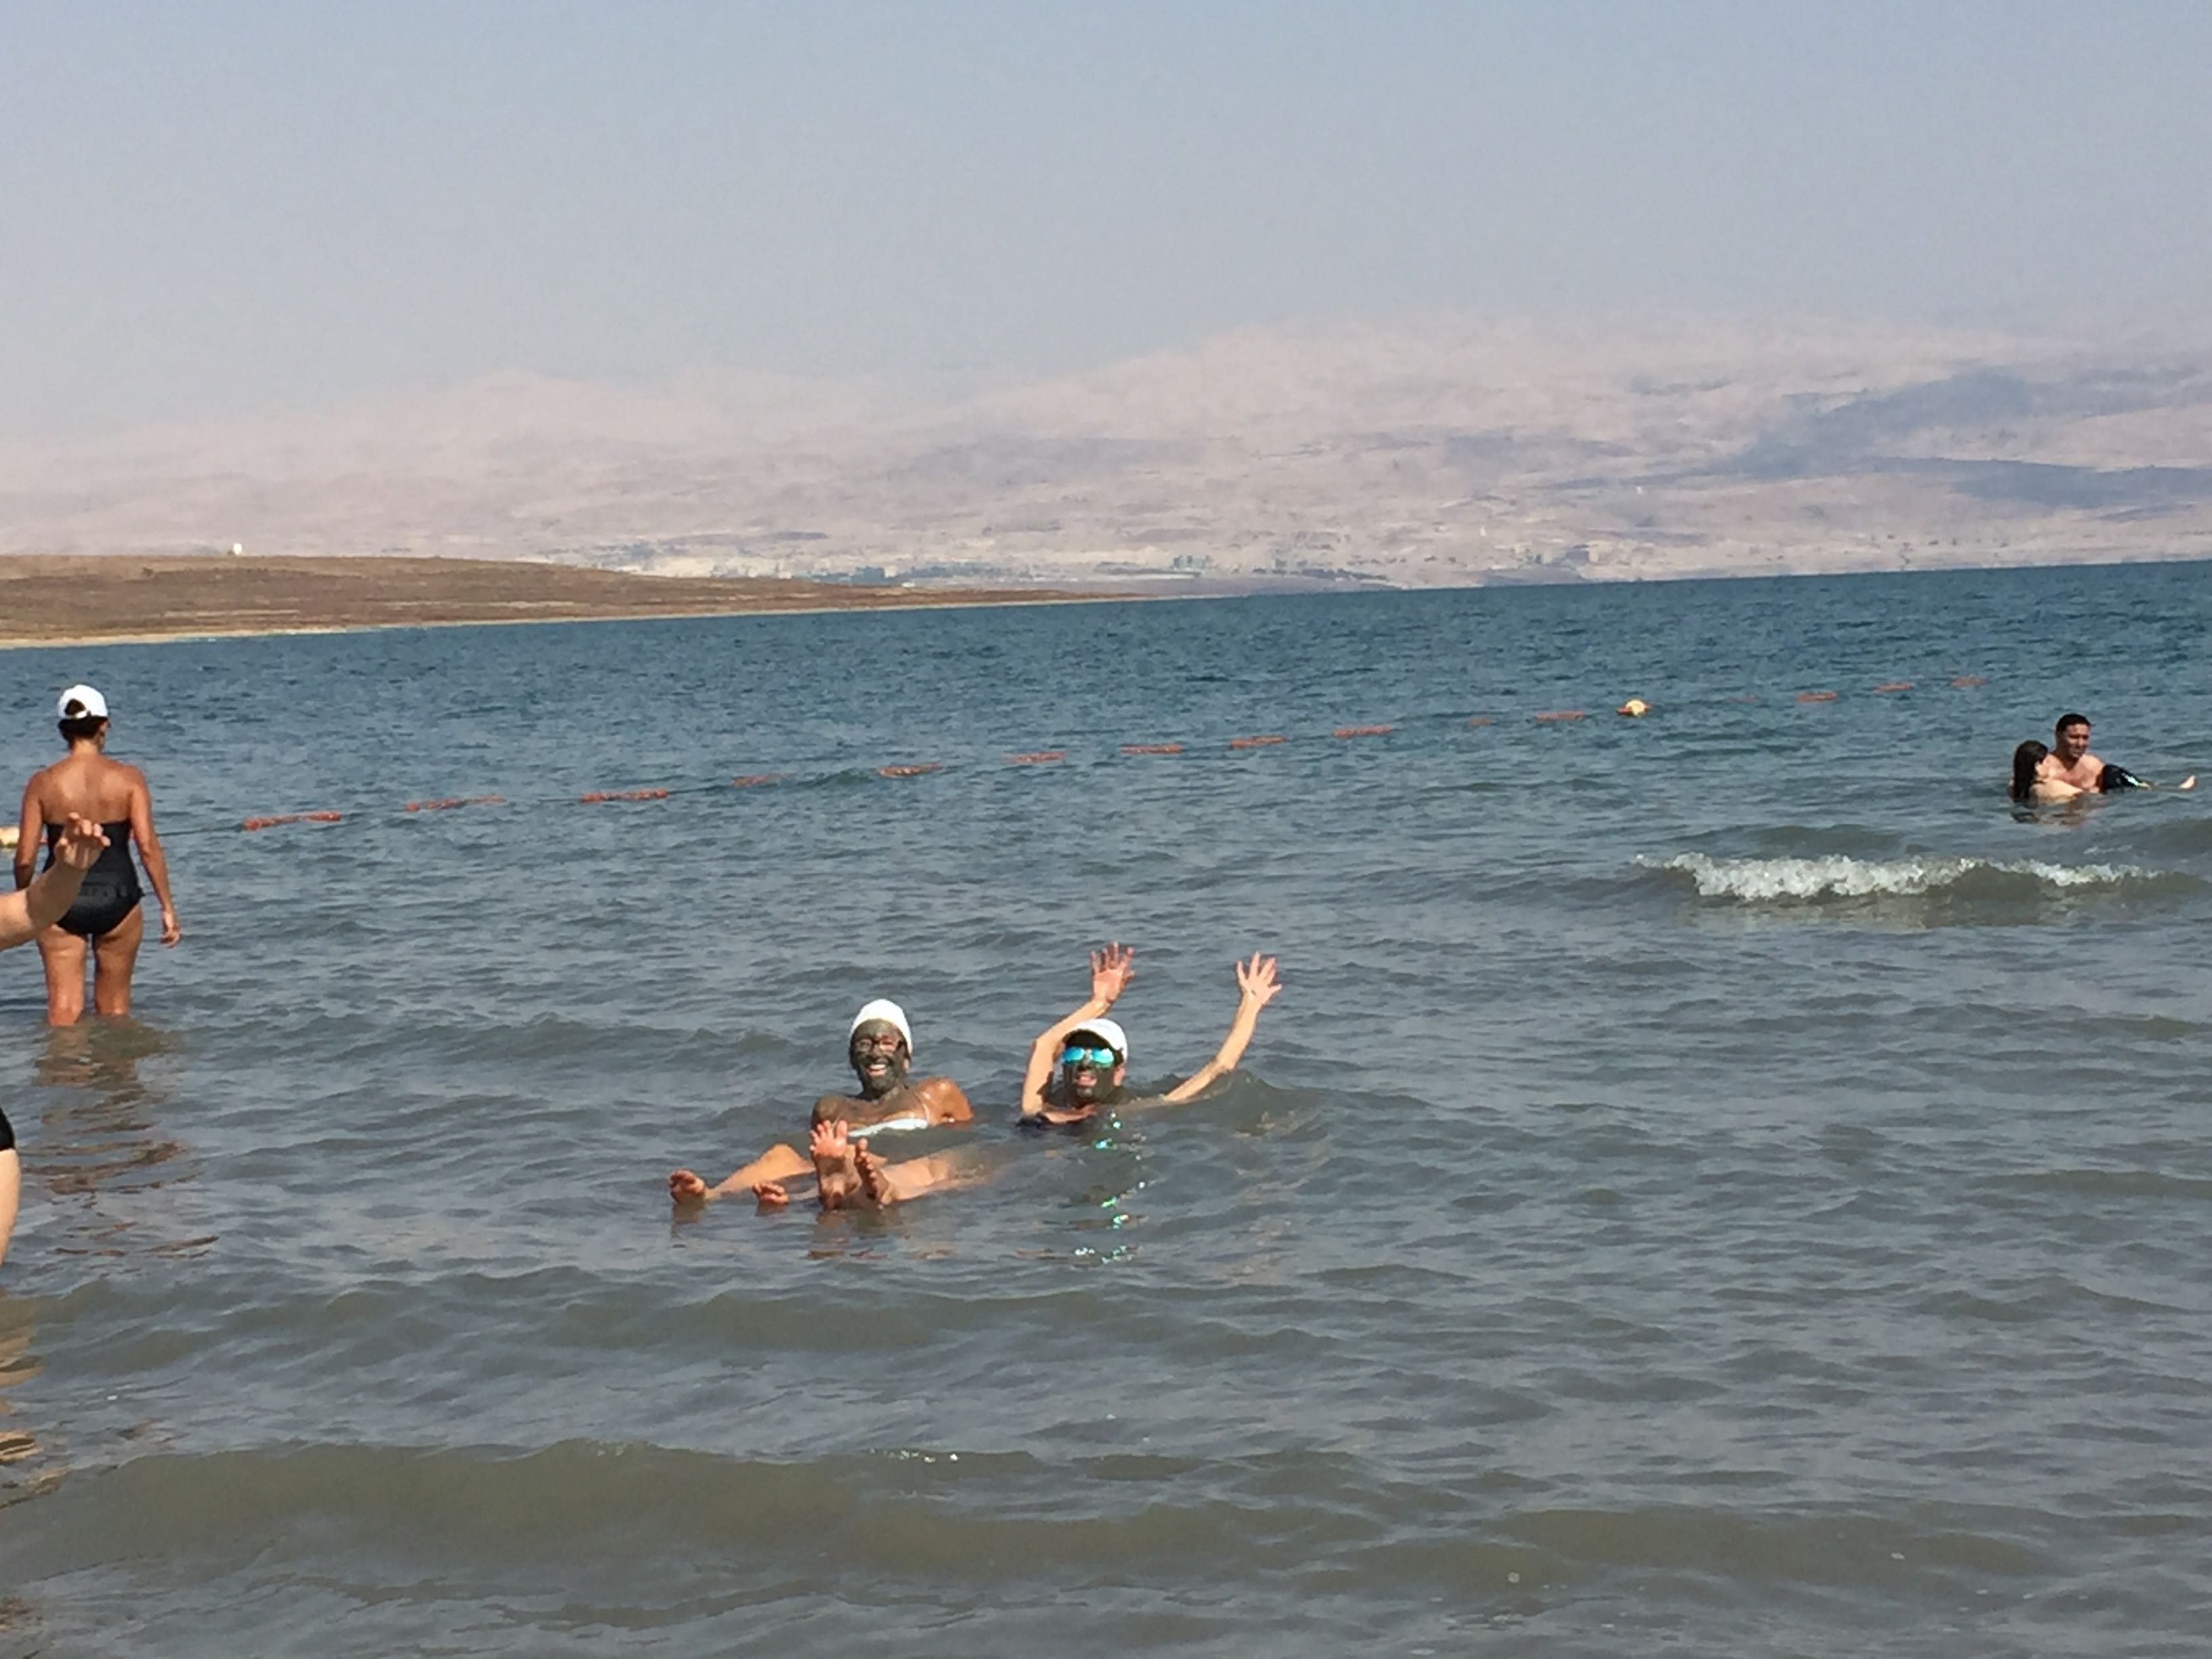 Dunking in the Dead Sea